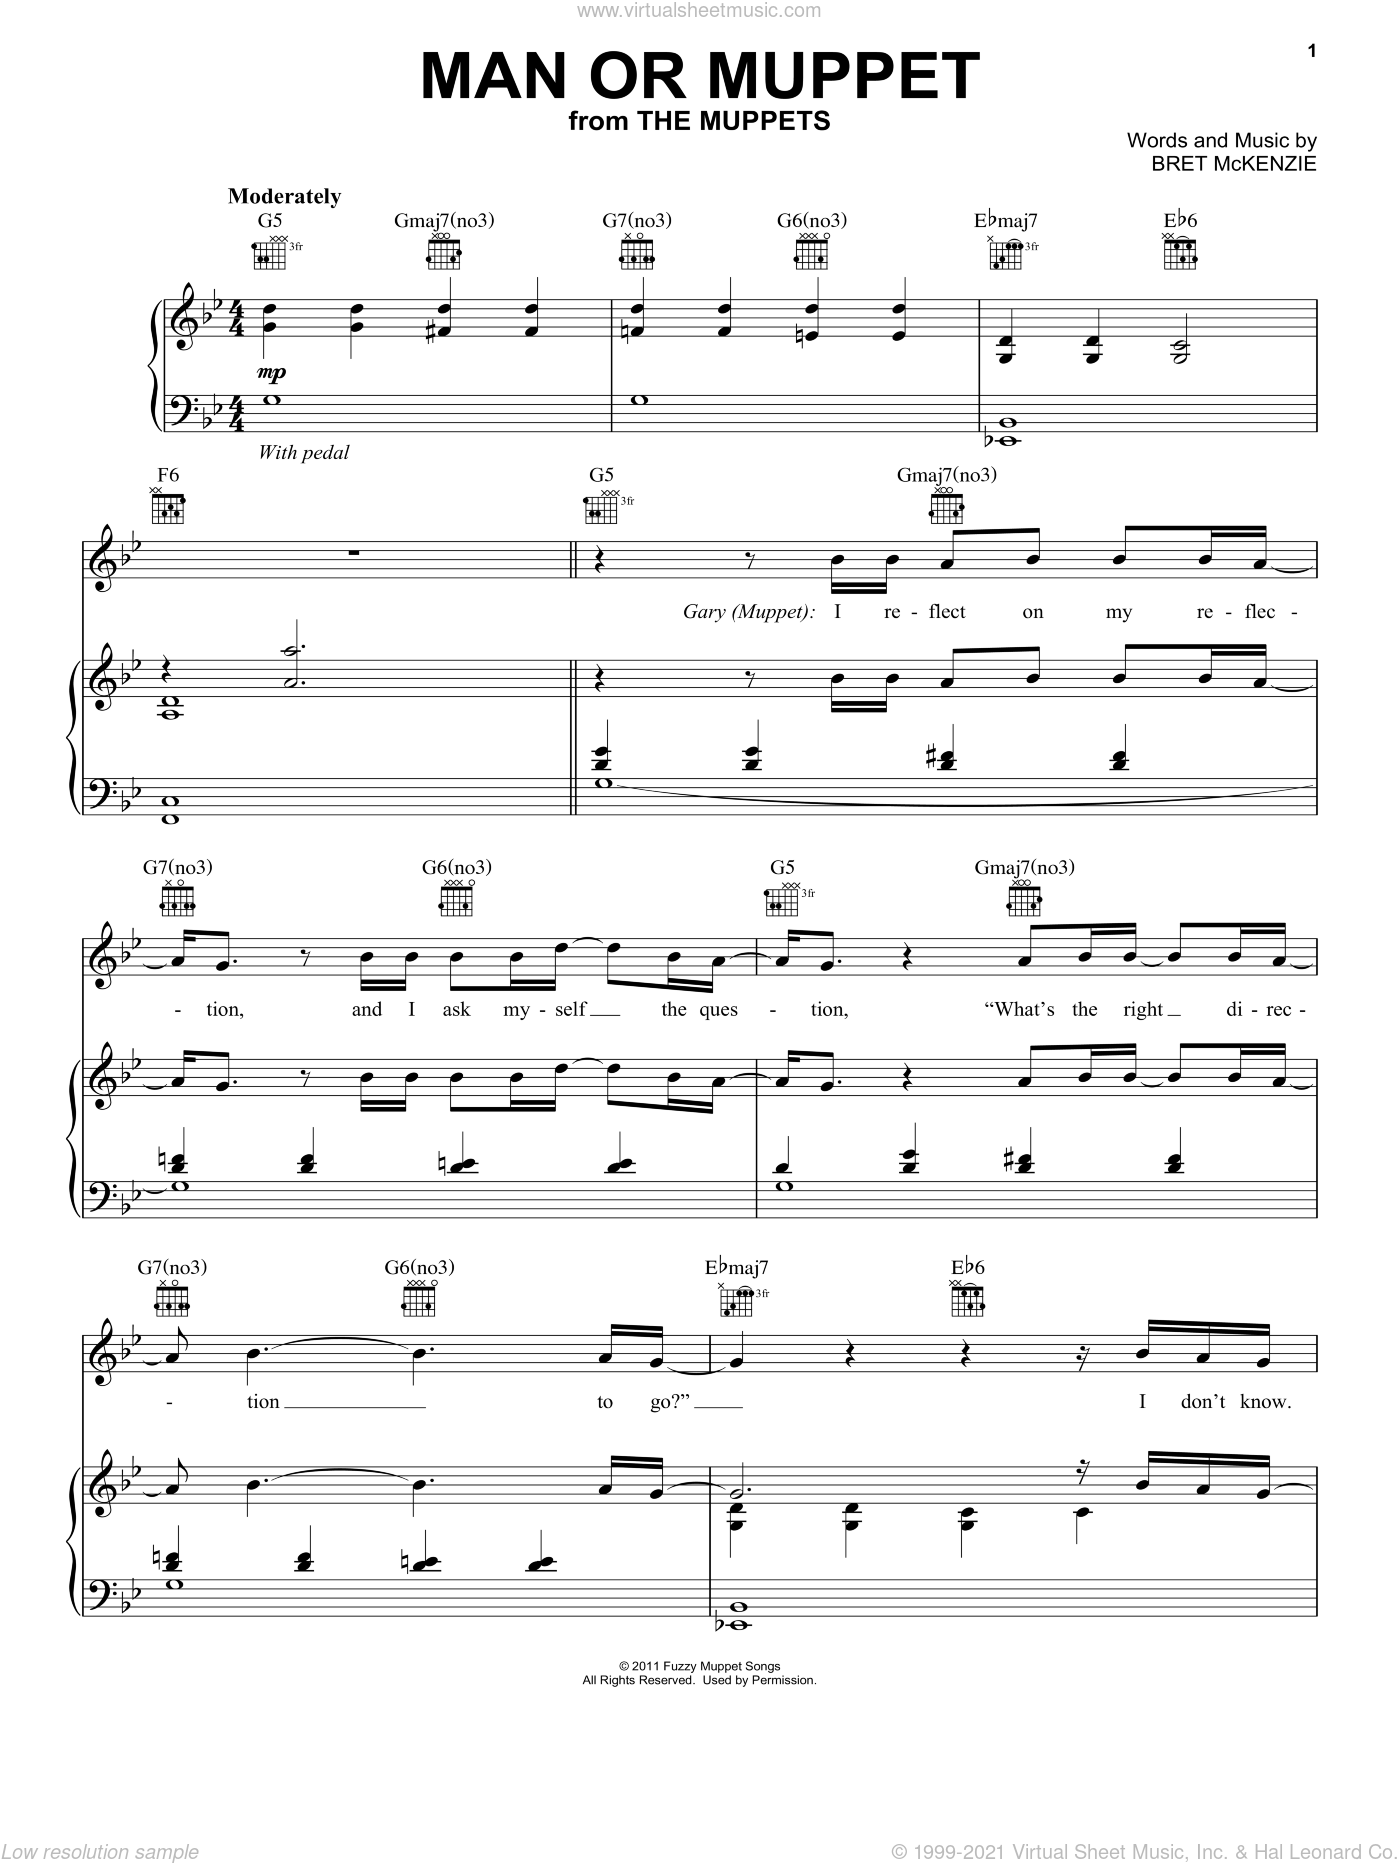 Man Or Muppet sheet music for voice, piano or guitar by The Muppets, The Muppets (Movie) and Bret McKenzie, intermediate skill level